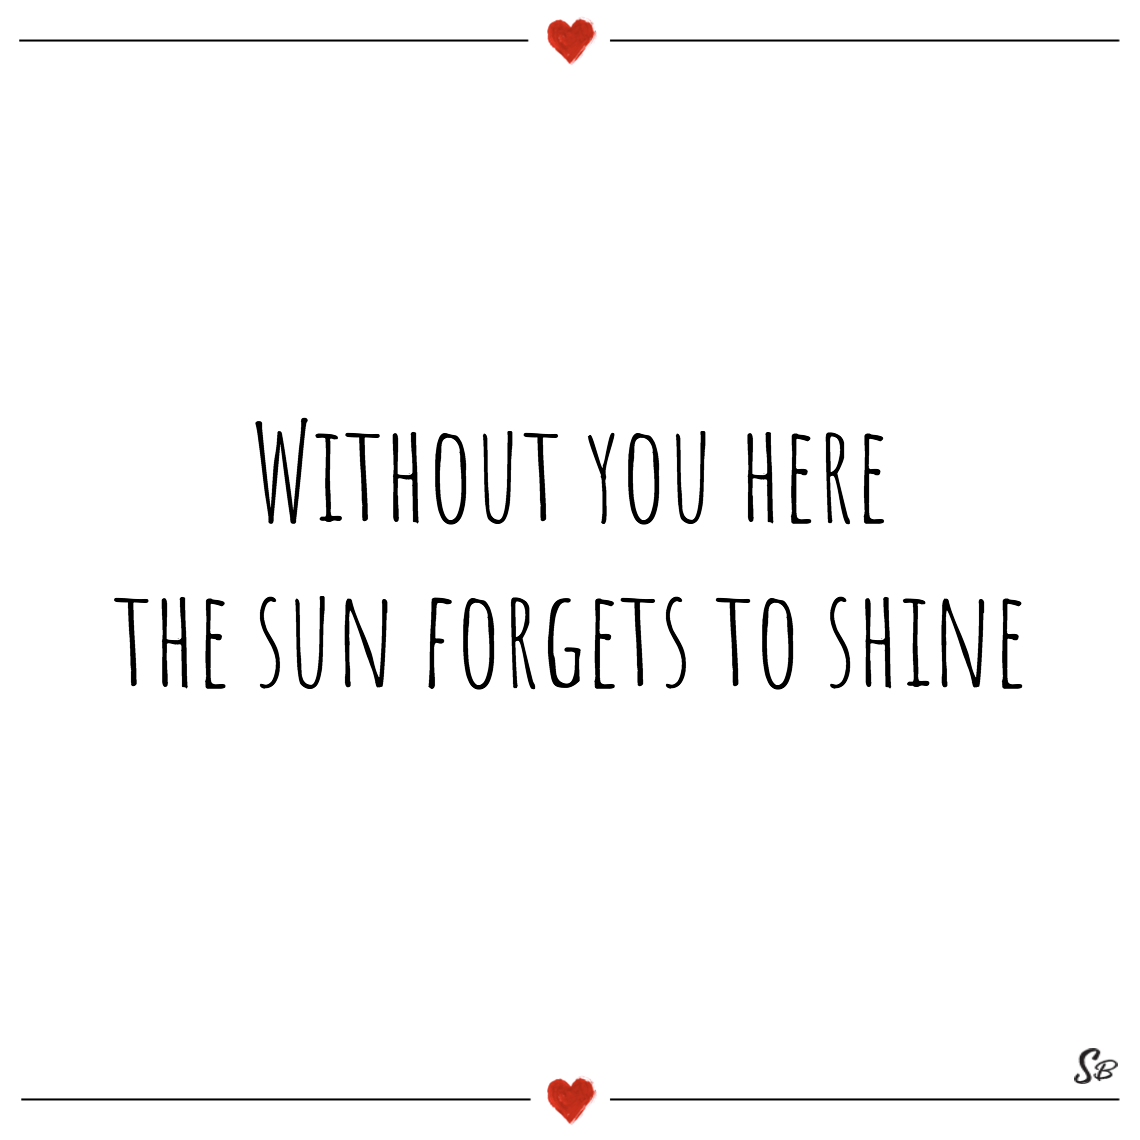 Without you here the sun forgets to shine